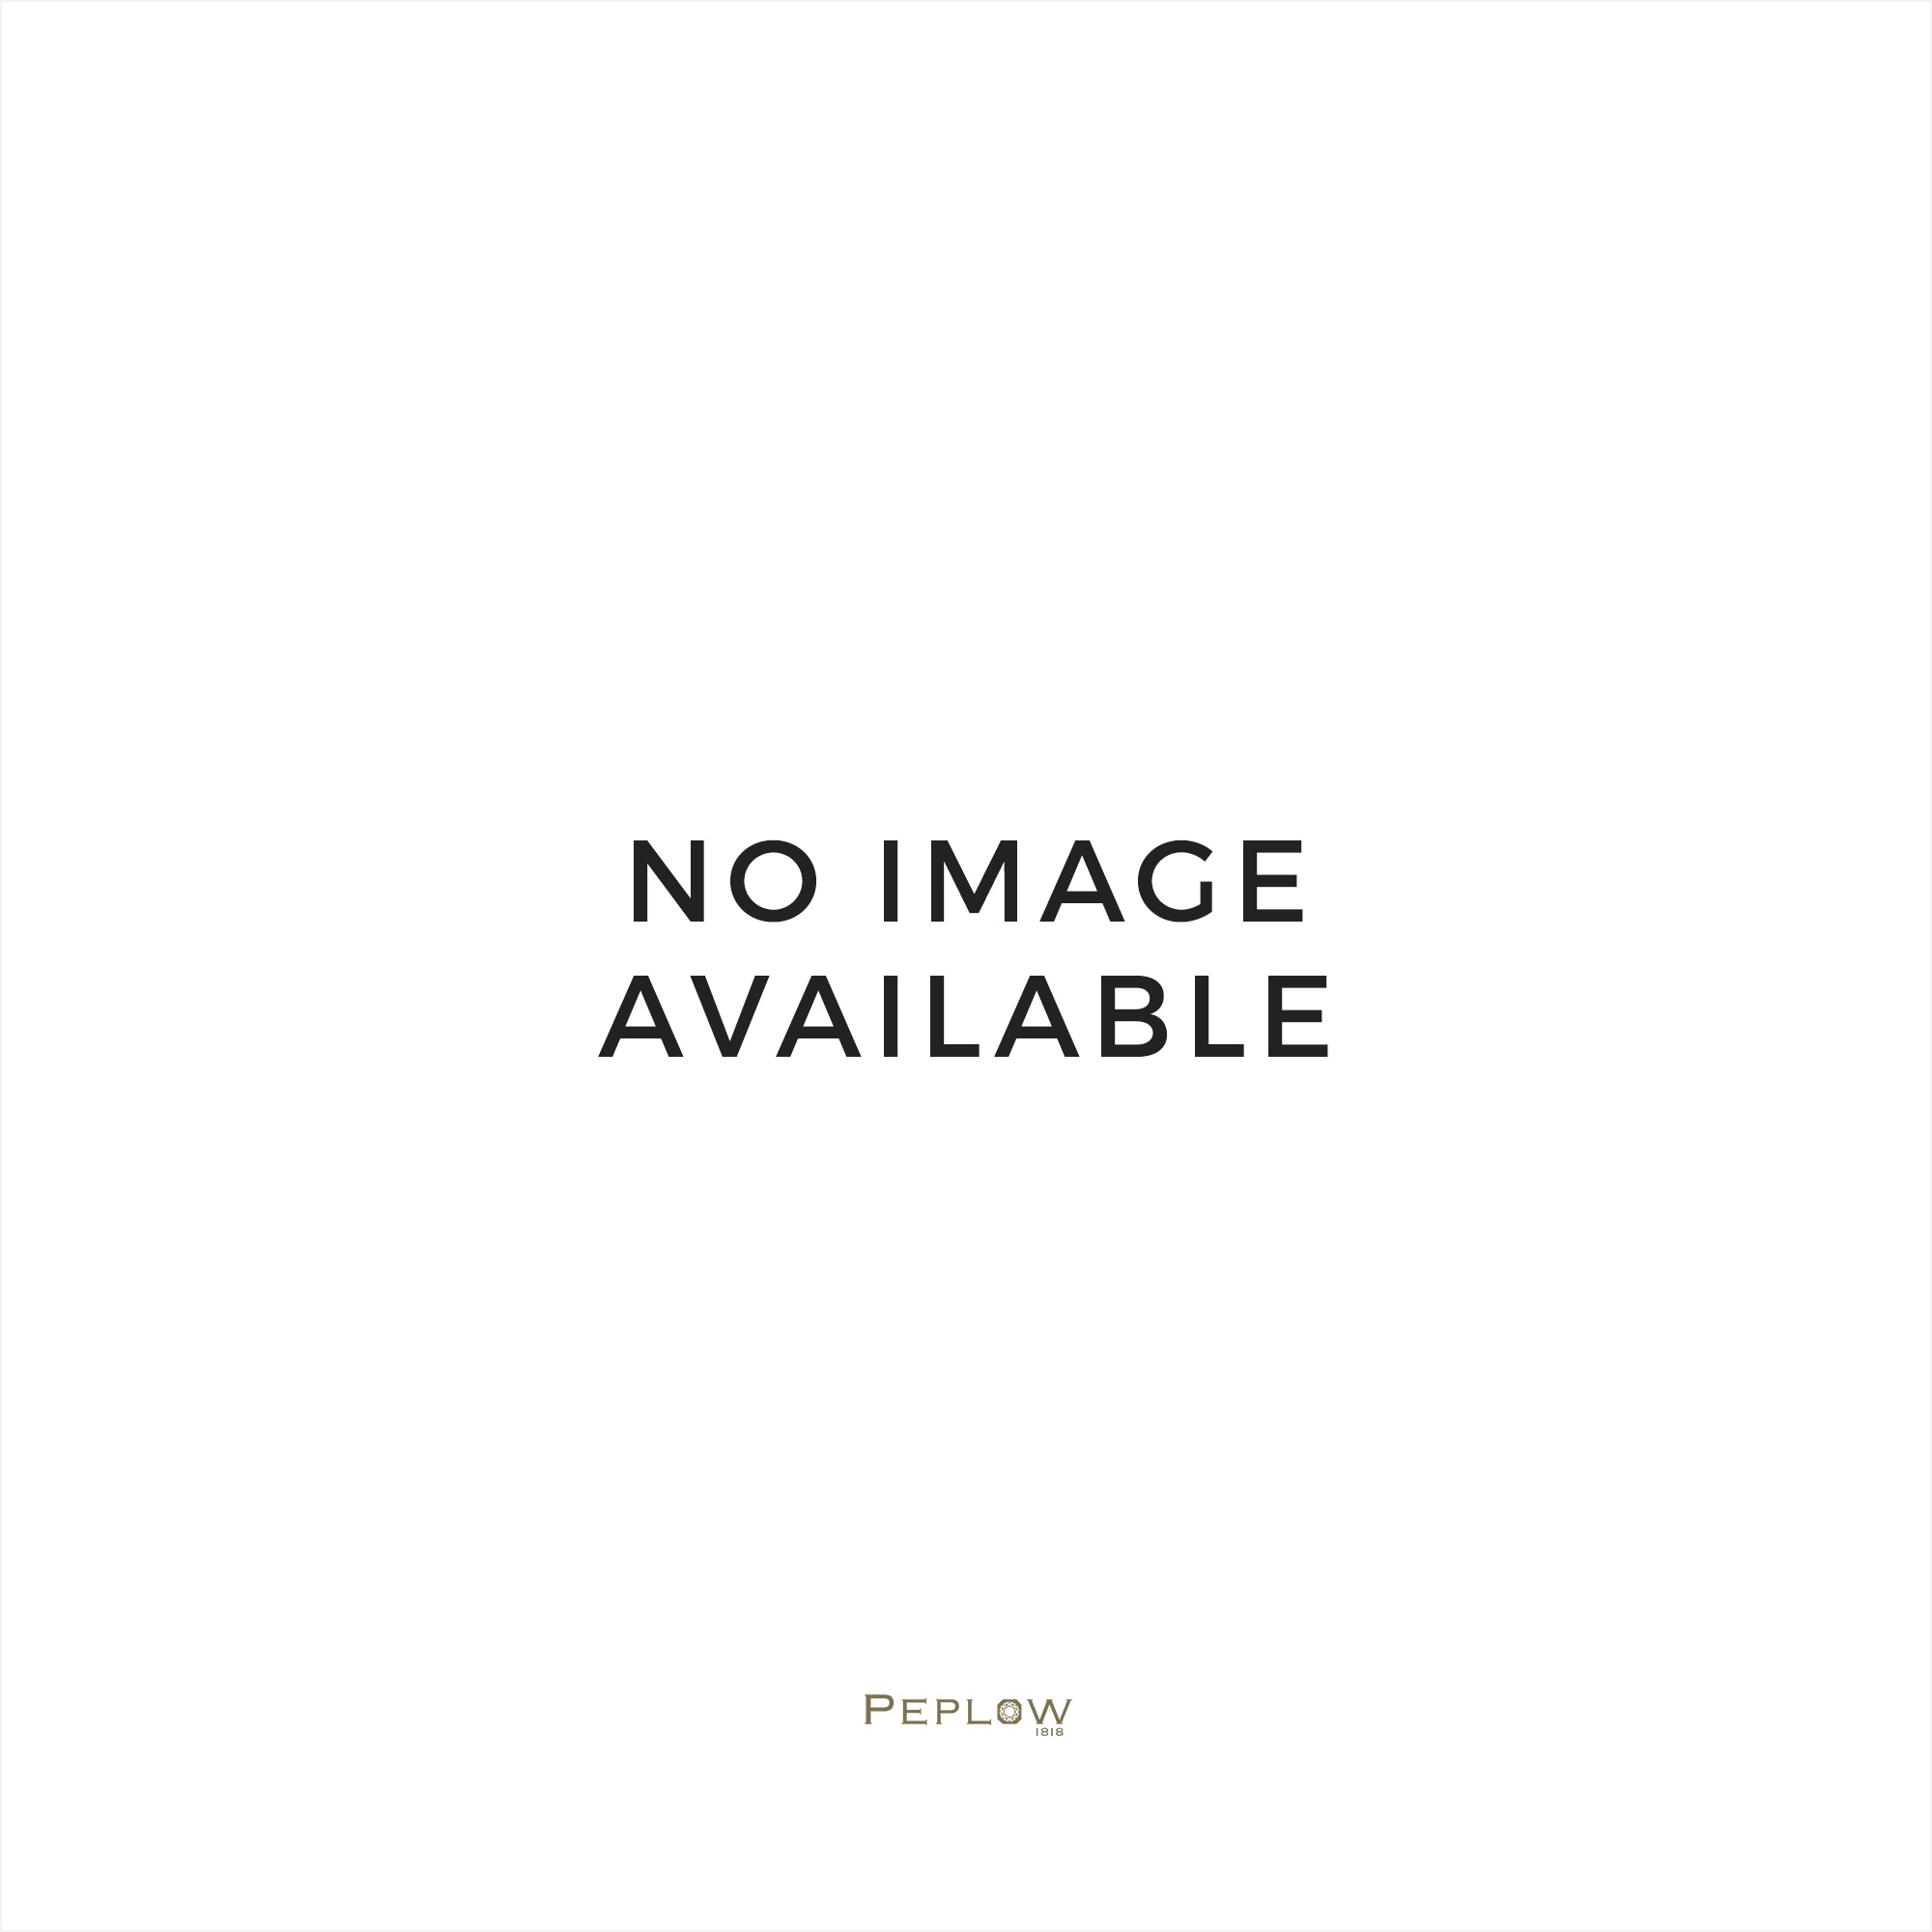 Seiko Watches Gent's Seiko Watch with Brown Leather Strap